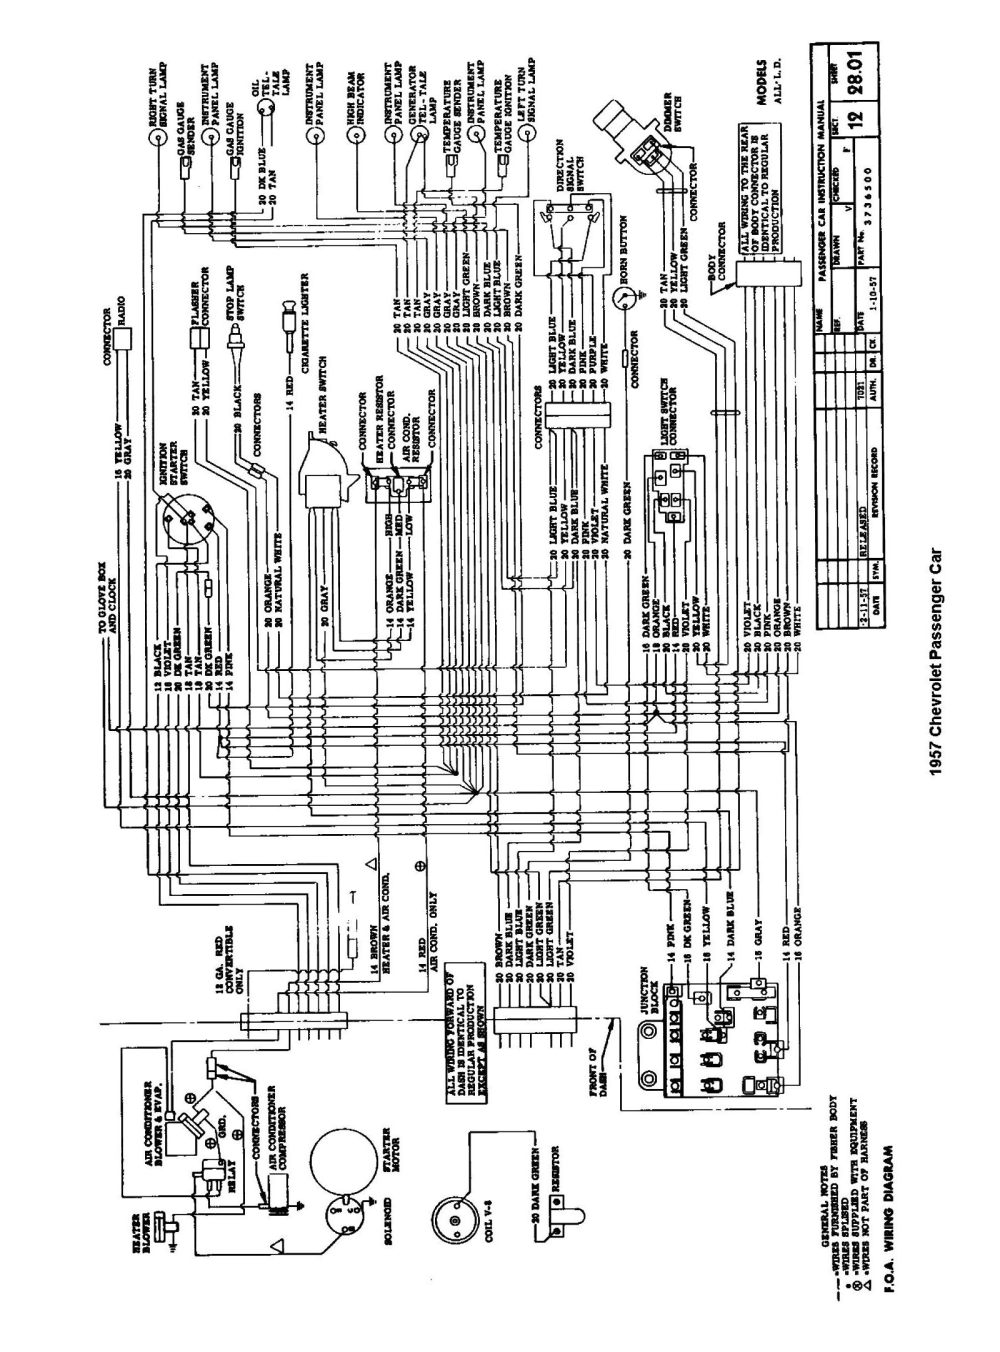 medium resolution of 1957 gmc truck wiring diagrams wiring diagram third level rh 16 16 jacobwinterstein com gmc truck electrical wiring diagrams gmc radio wiring diagram